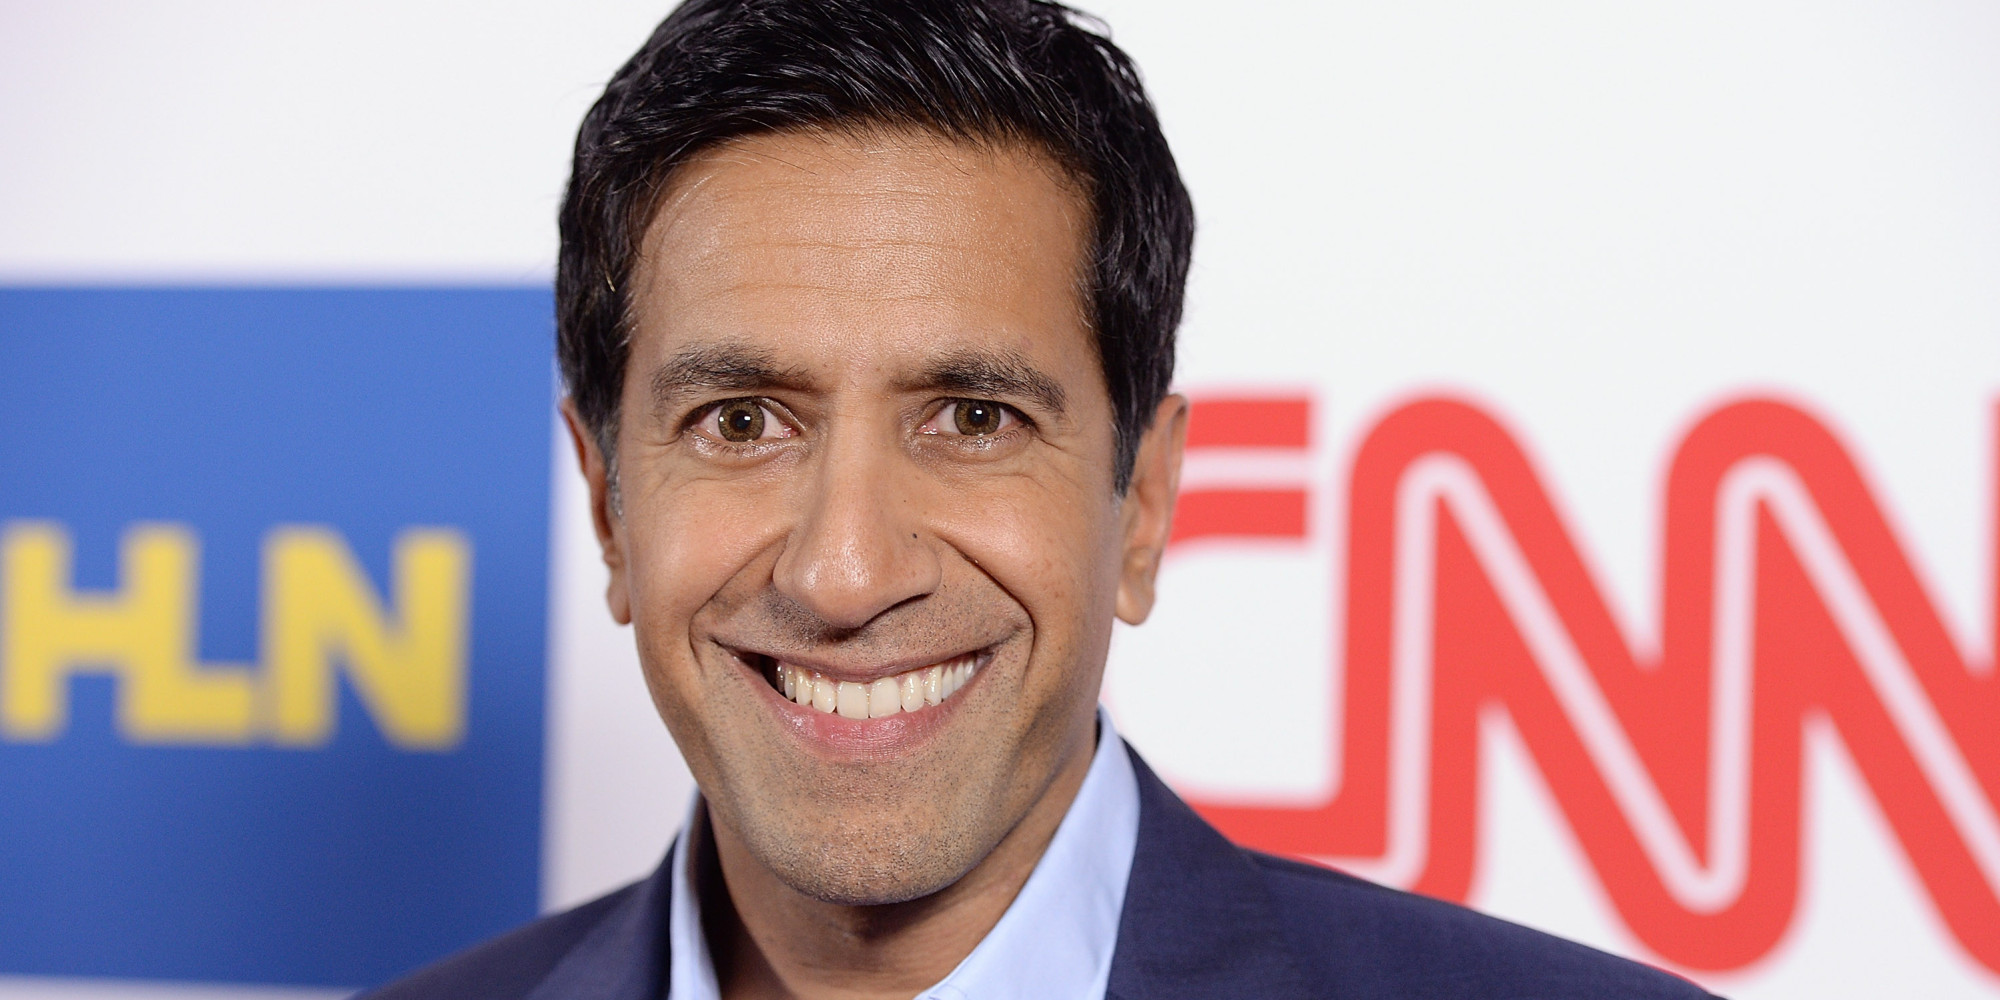 Sanjay Gupta earned a  million dollar salary - leaving the net worth at 21 million in 2018